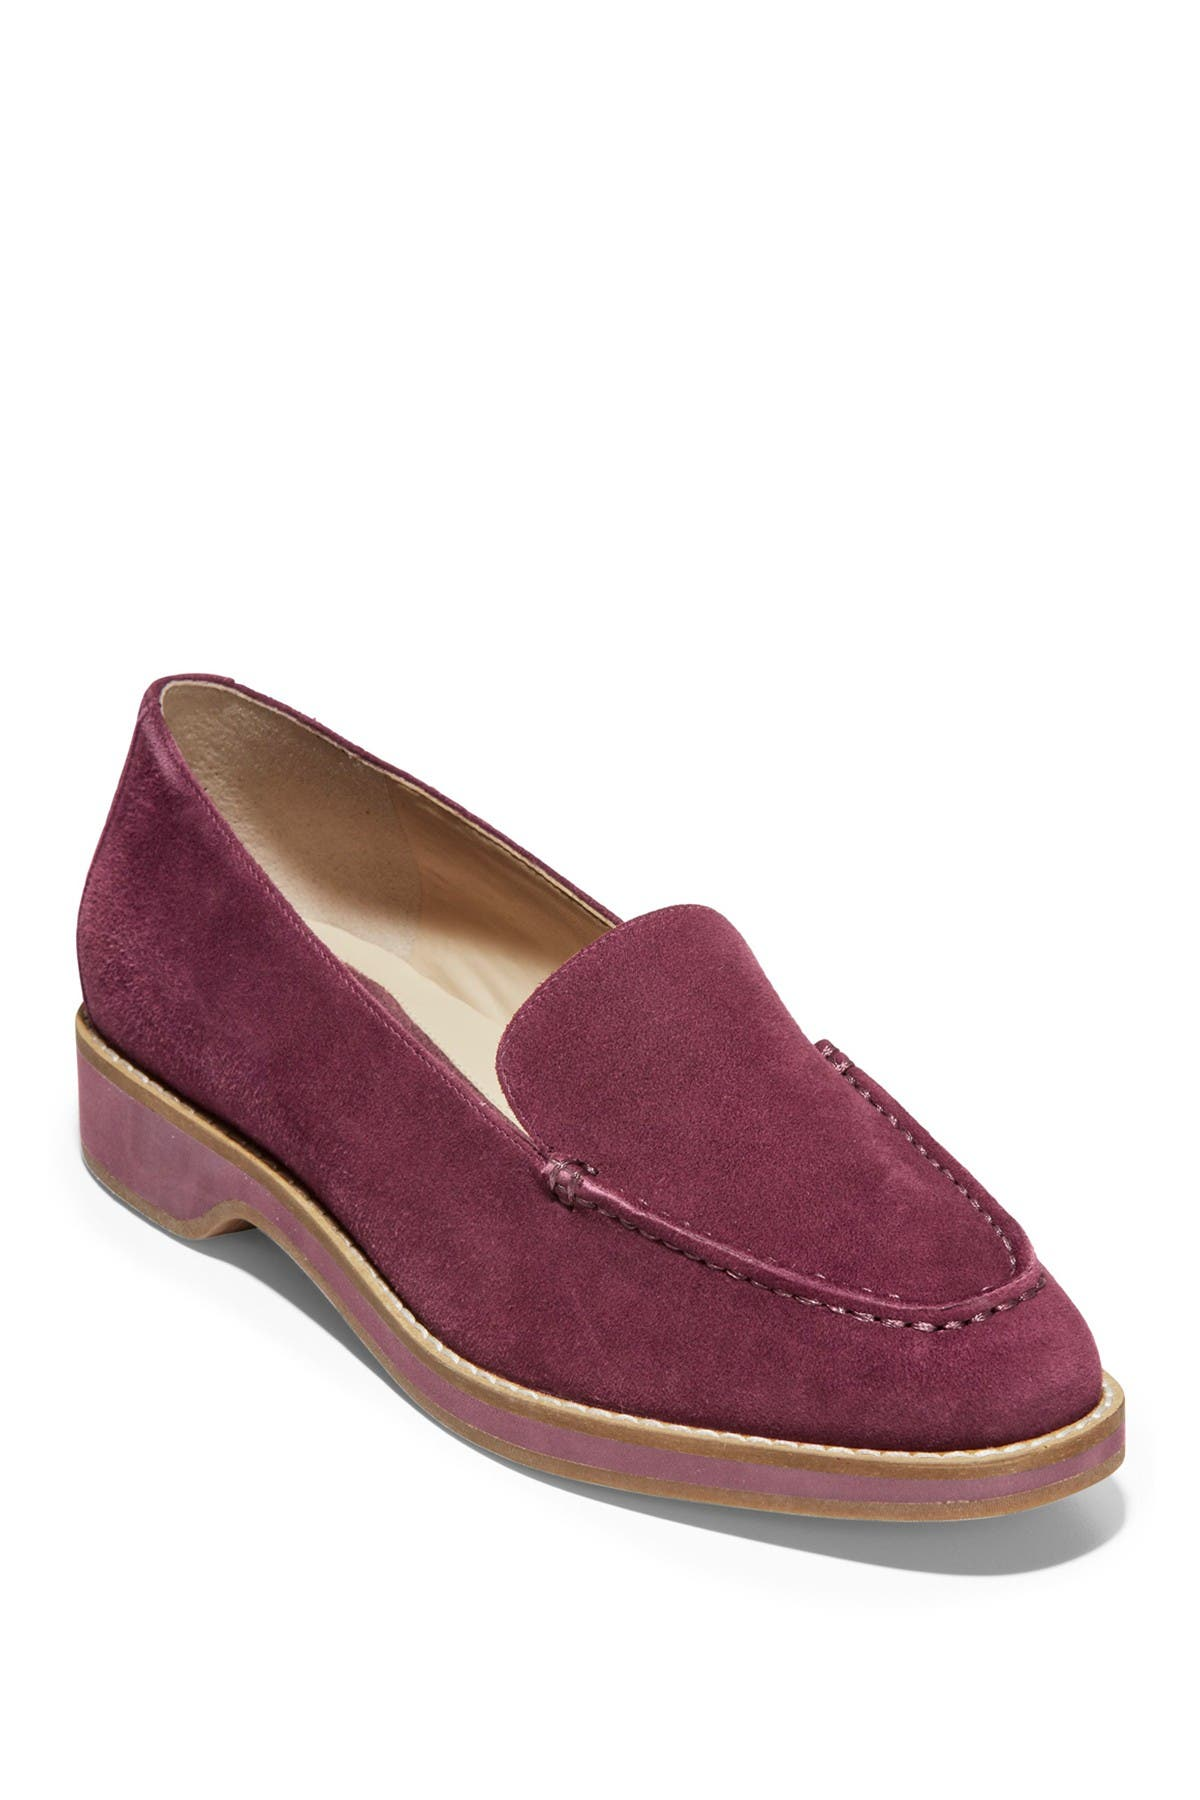 Image of Cole Haan The Go-To Loafer